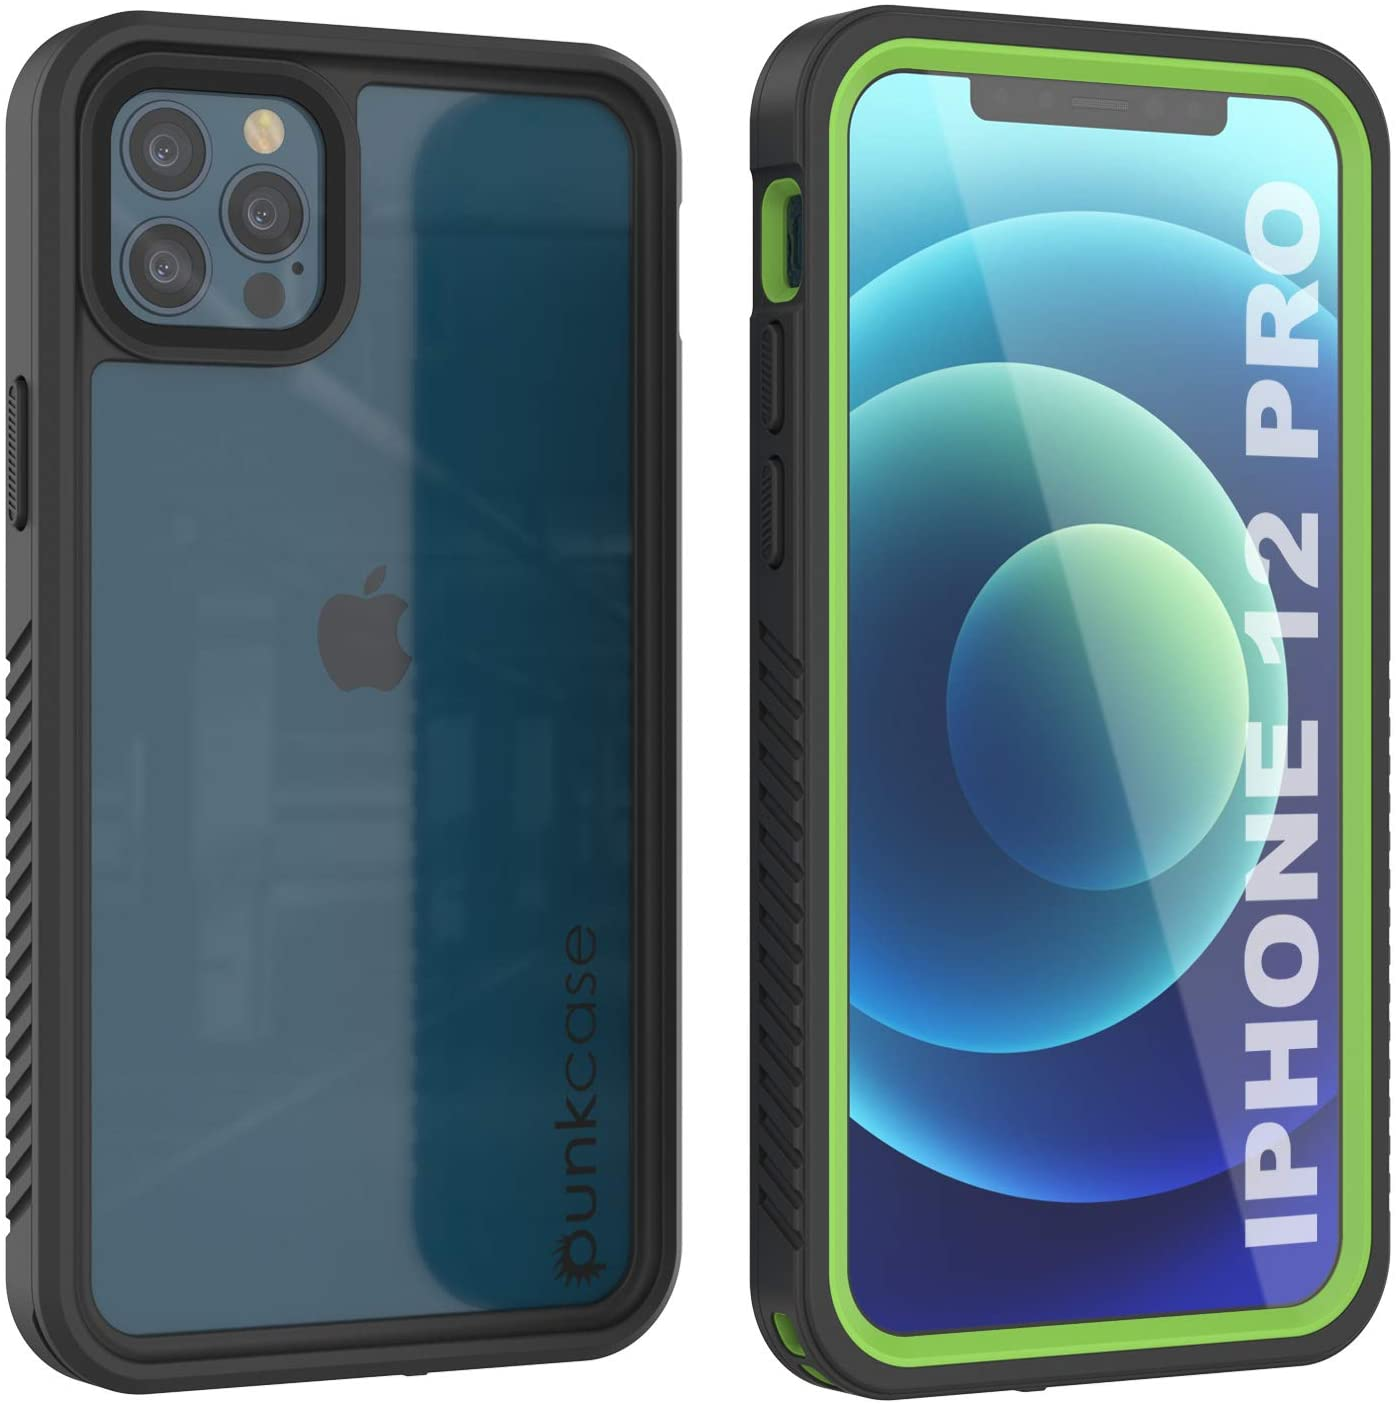 iPhone 12 Pro Waterproof Case, Punkcase [Extreme Series] Armor Cover W/ Built In Screen Protector [Light Green]